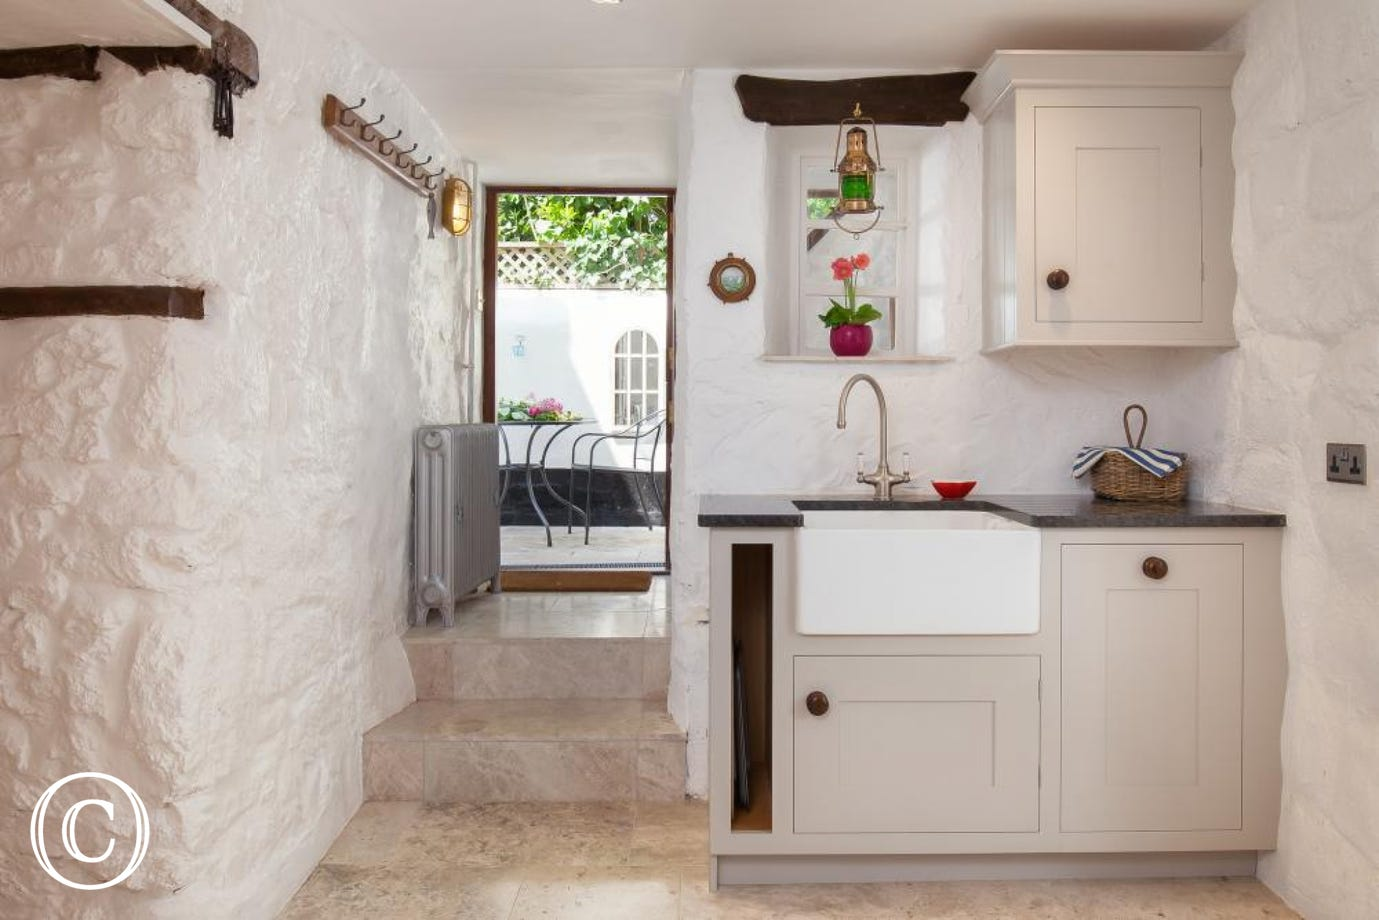 Large ceramic sink & dishwasher with a small utility area next to the back stable door.